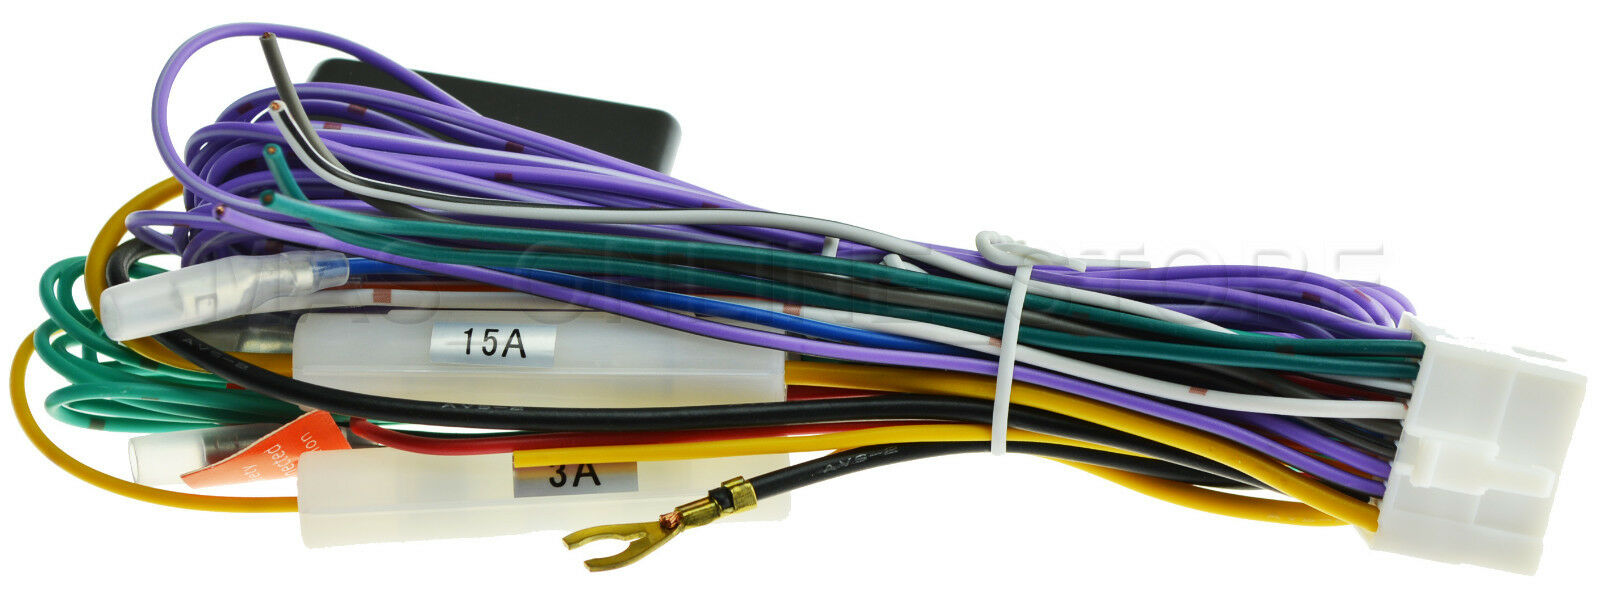 Clarion Nx 509 Nx509 700 Nx700 Genuine Power Wire Harness Ships Wiring Today 1 Of 3only 2 Available